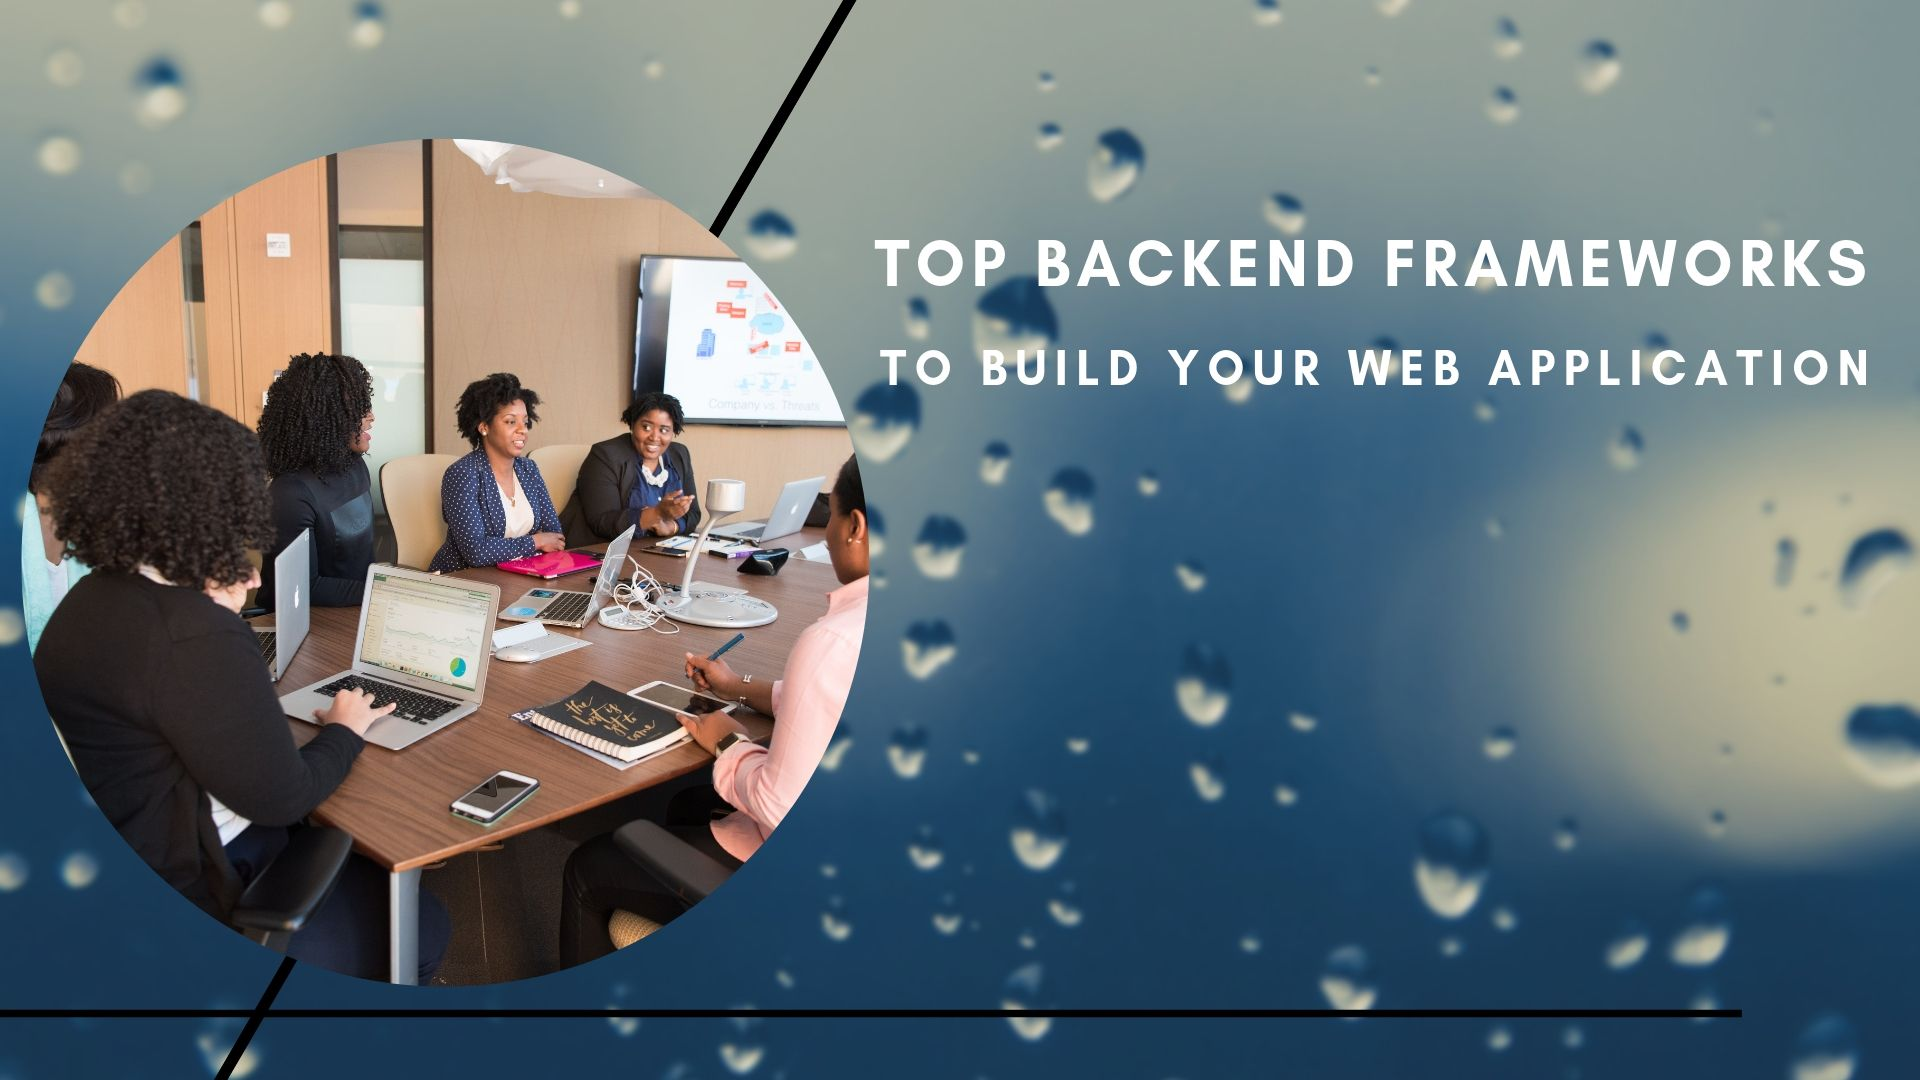 Top Backend Frameworks to Build Your Web Application